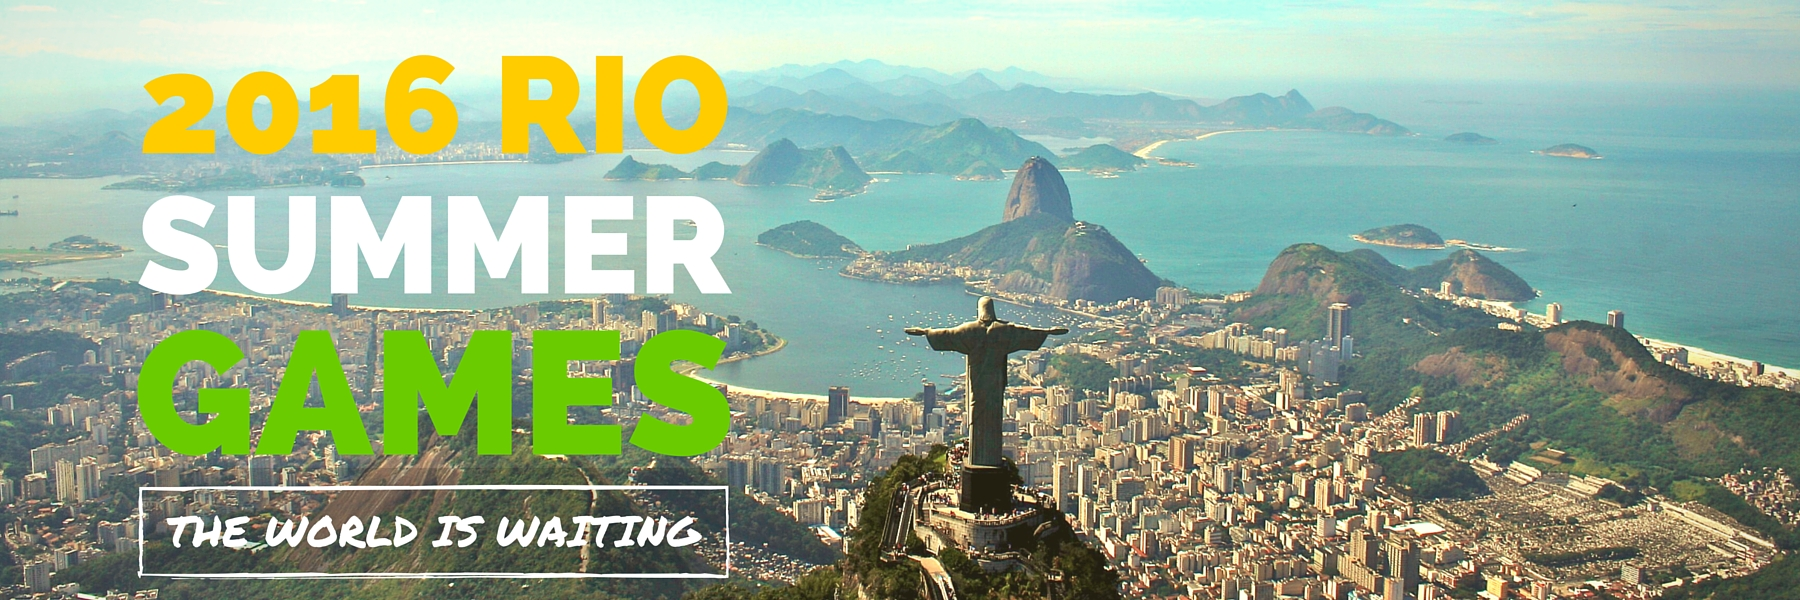 2016 Rio Summer Games Travel Packages